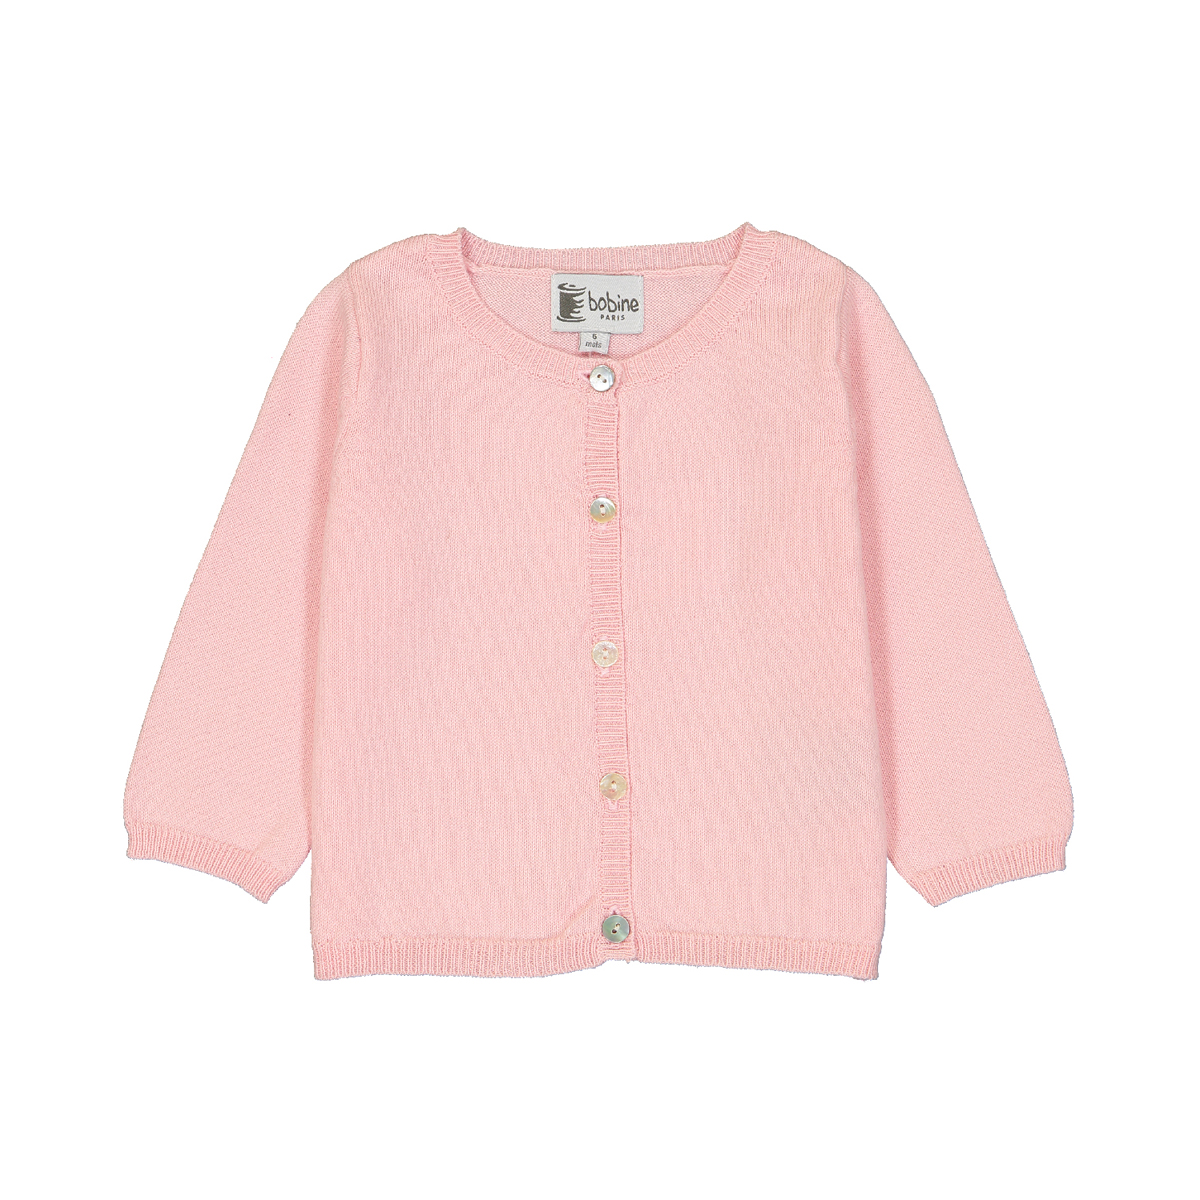 Bobine Baby Cardigan in Rose